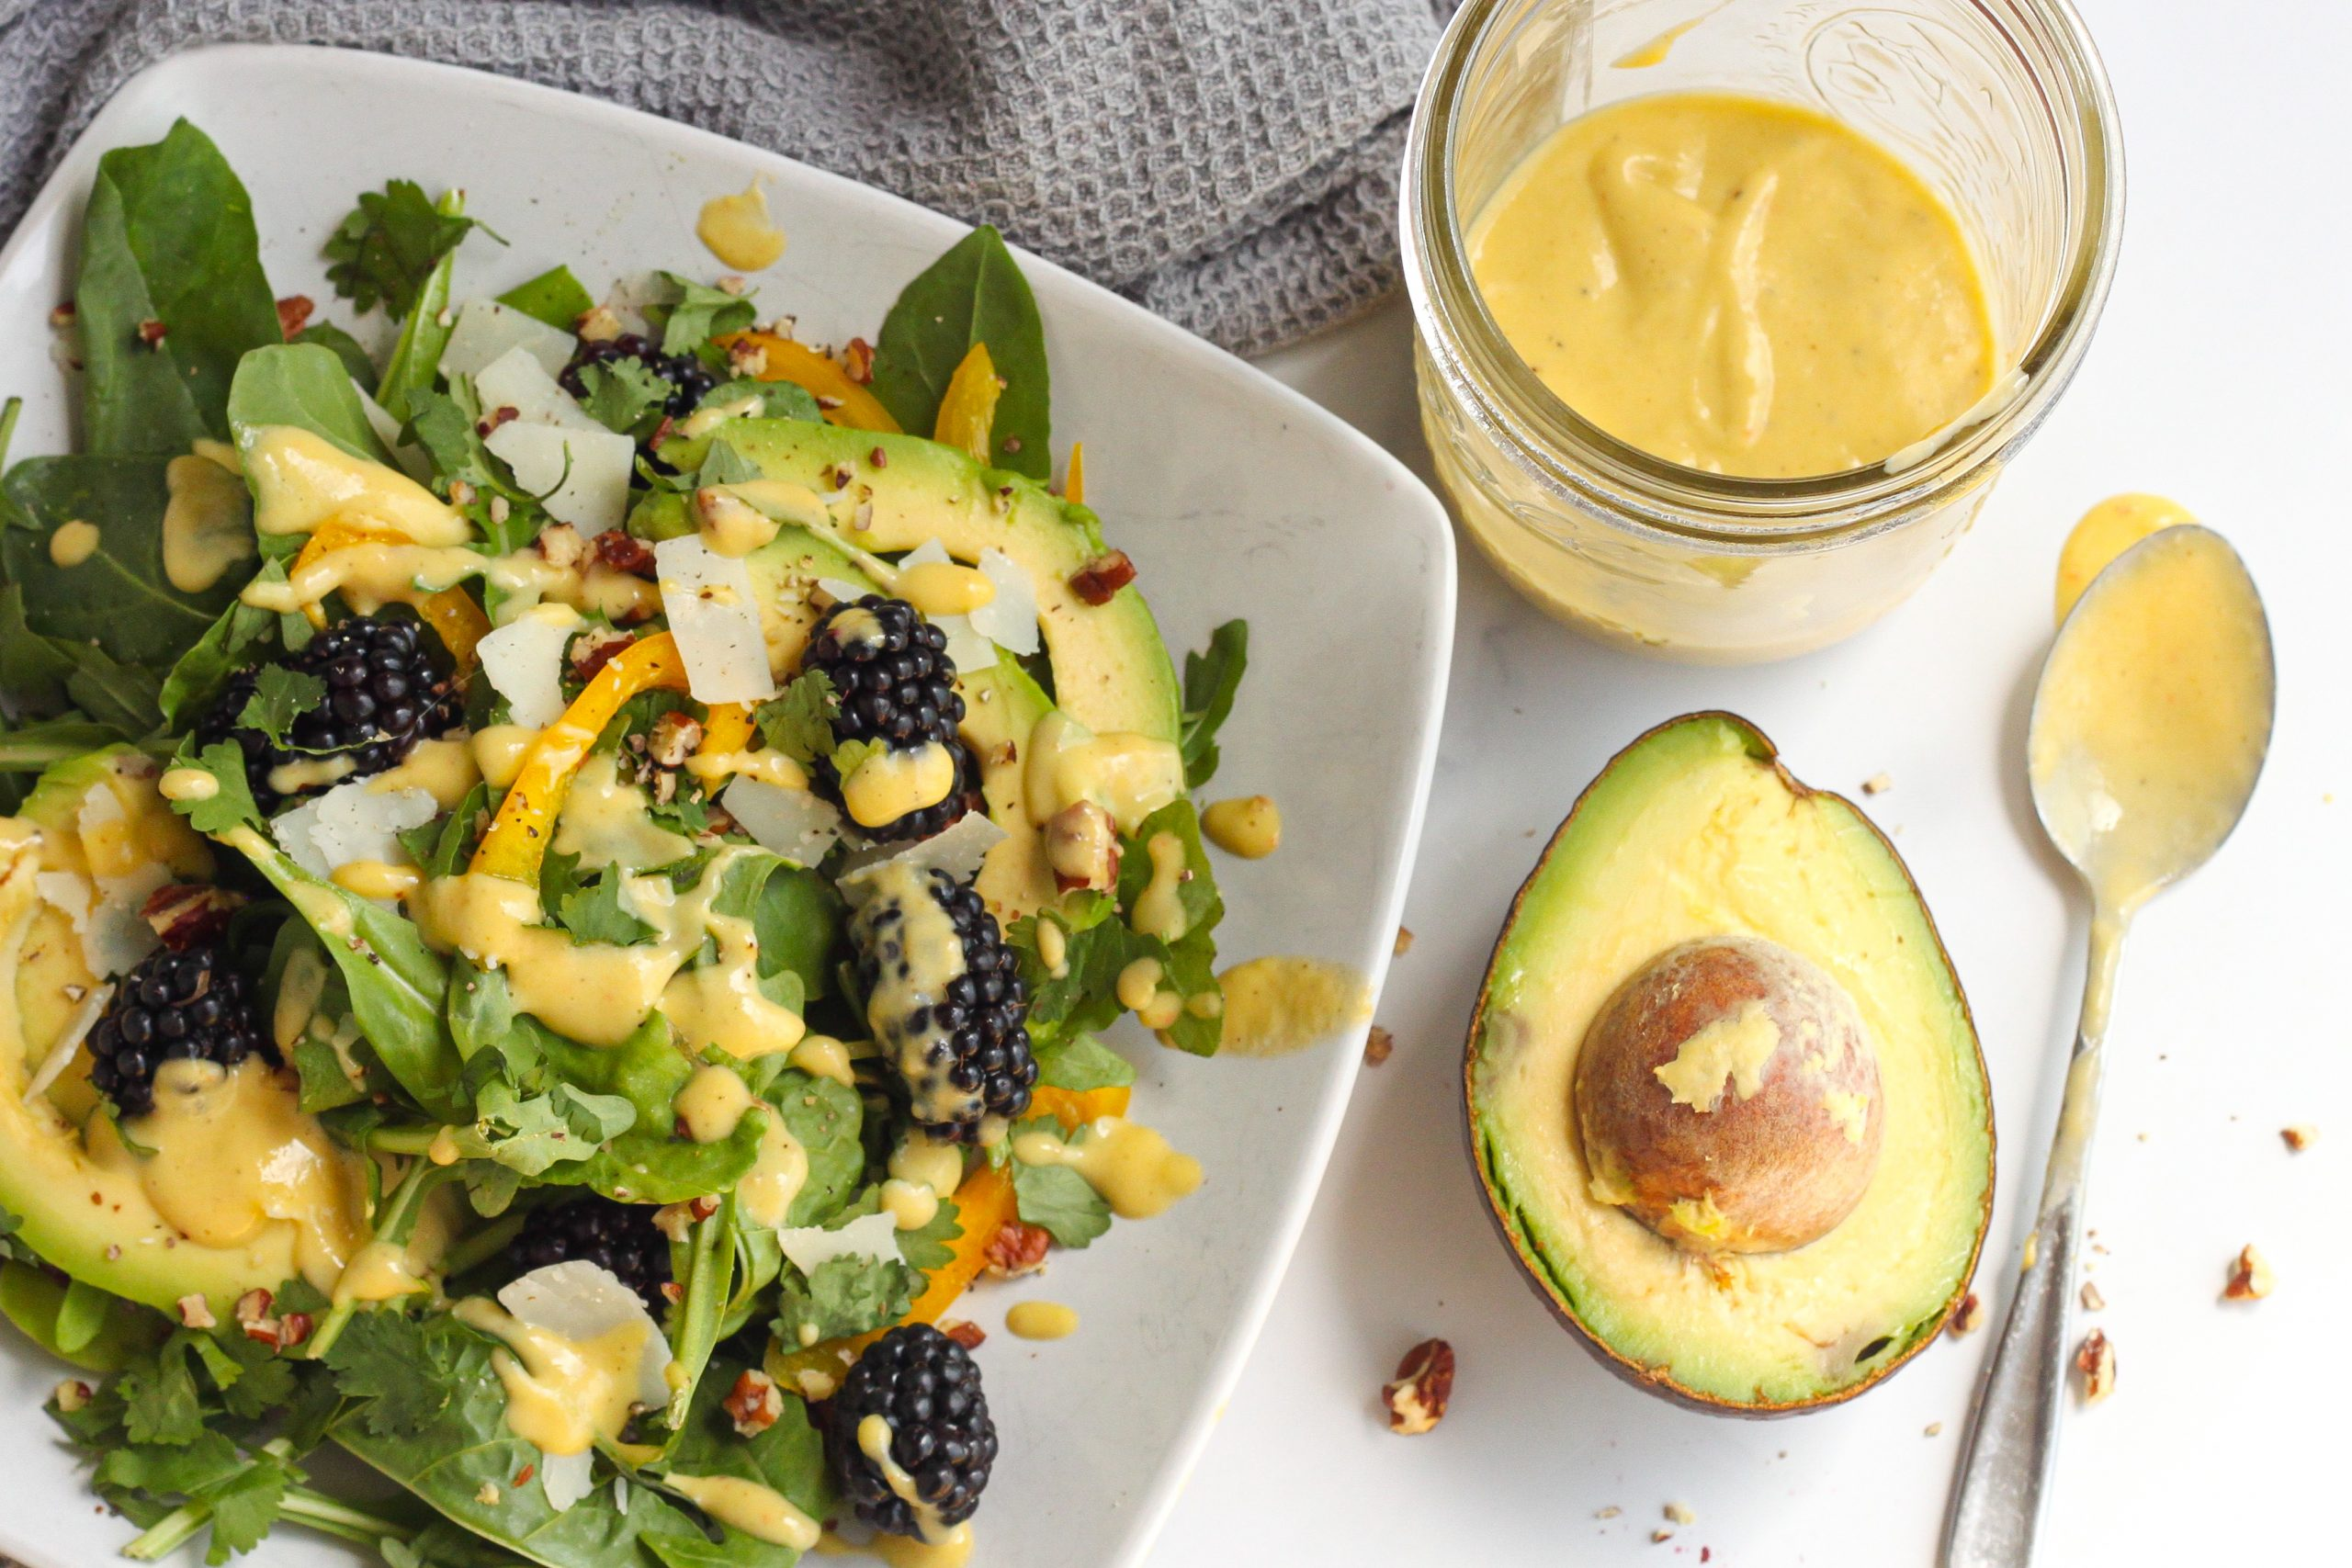 Spicy Mango Lime Dressing